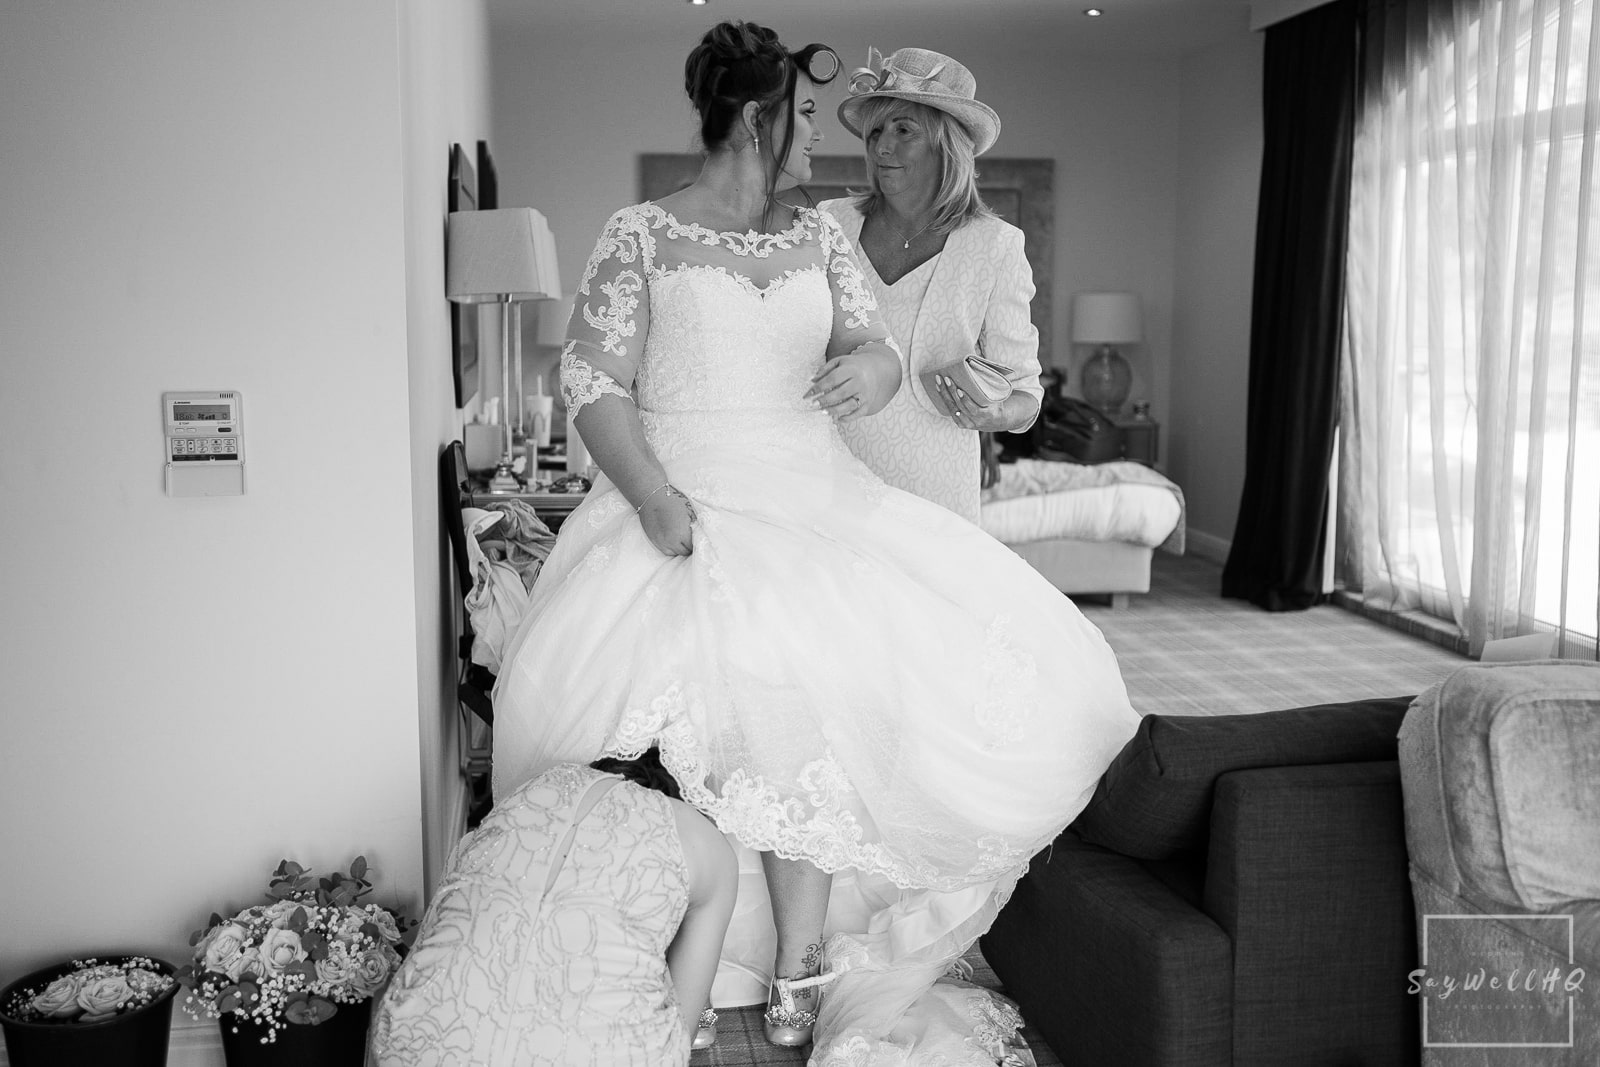 PEAK EDGE HOTEL WEDDING PHOTOGRAPHY - bride puts on her wedding dress with help from her mother and bridesmaids